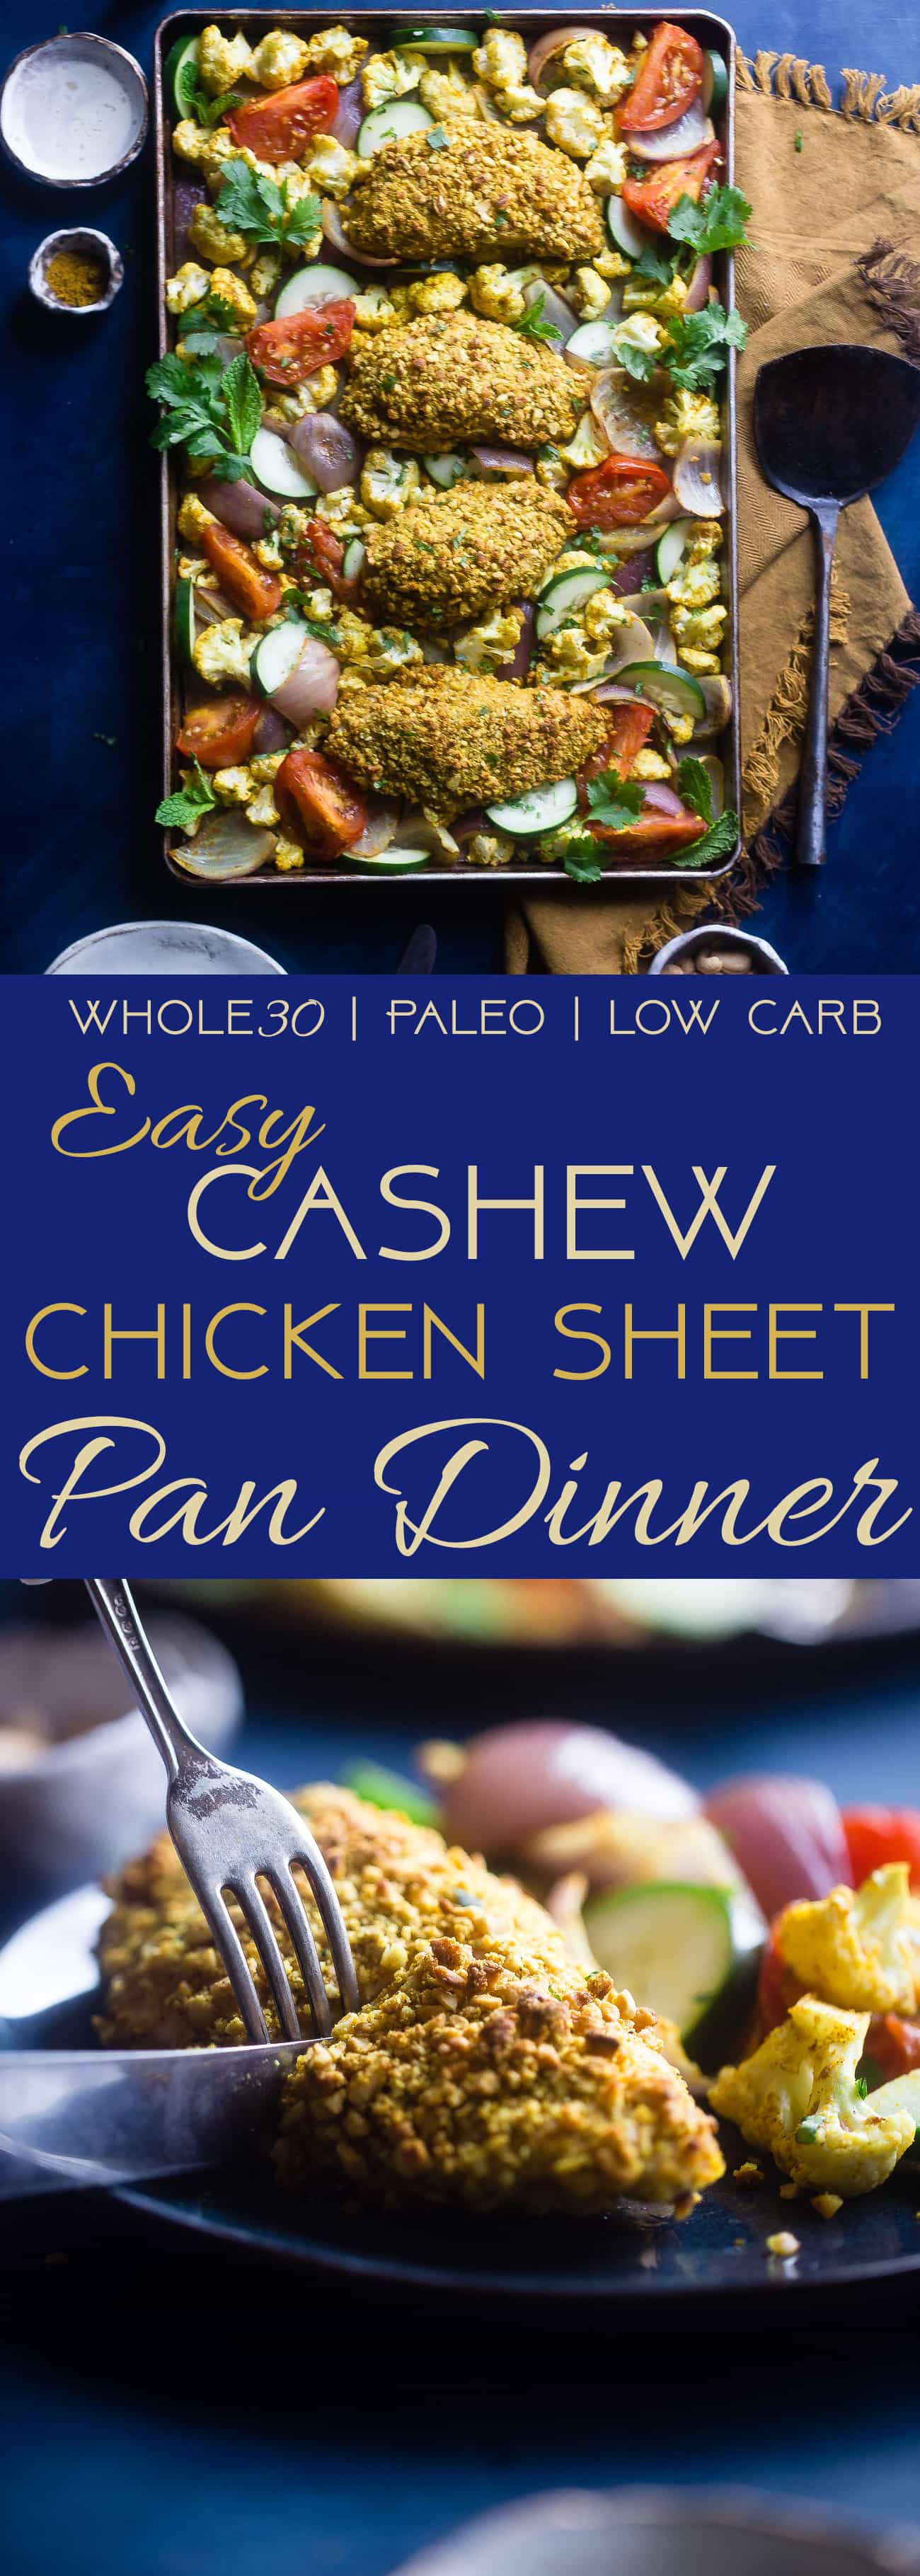 Whole30 Healthy Cashew Chicken Sheet Pan Dinner - This low carb cashew chicken is flavored with curry, and the whole meal is made on one sheet! It's an easy, healthy weeknight meal the whole will love, for under 400 calories! | Foodfaithfitness.com | @FoodFaithFit | easy cashew chicken. keto cashew chicken. sheet pan cashew chicken. best cashew chicken. curry cashew chicken. gluten free cashew chicken. skinny cashew chicken. chicken sheet pan dinner. easy meals. whole30 sheet pan dinner. sheet pan dinner recipes